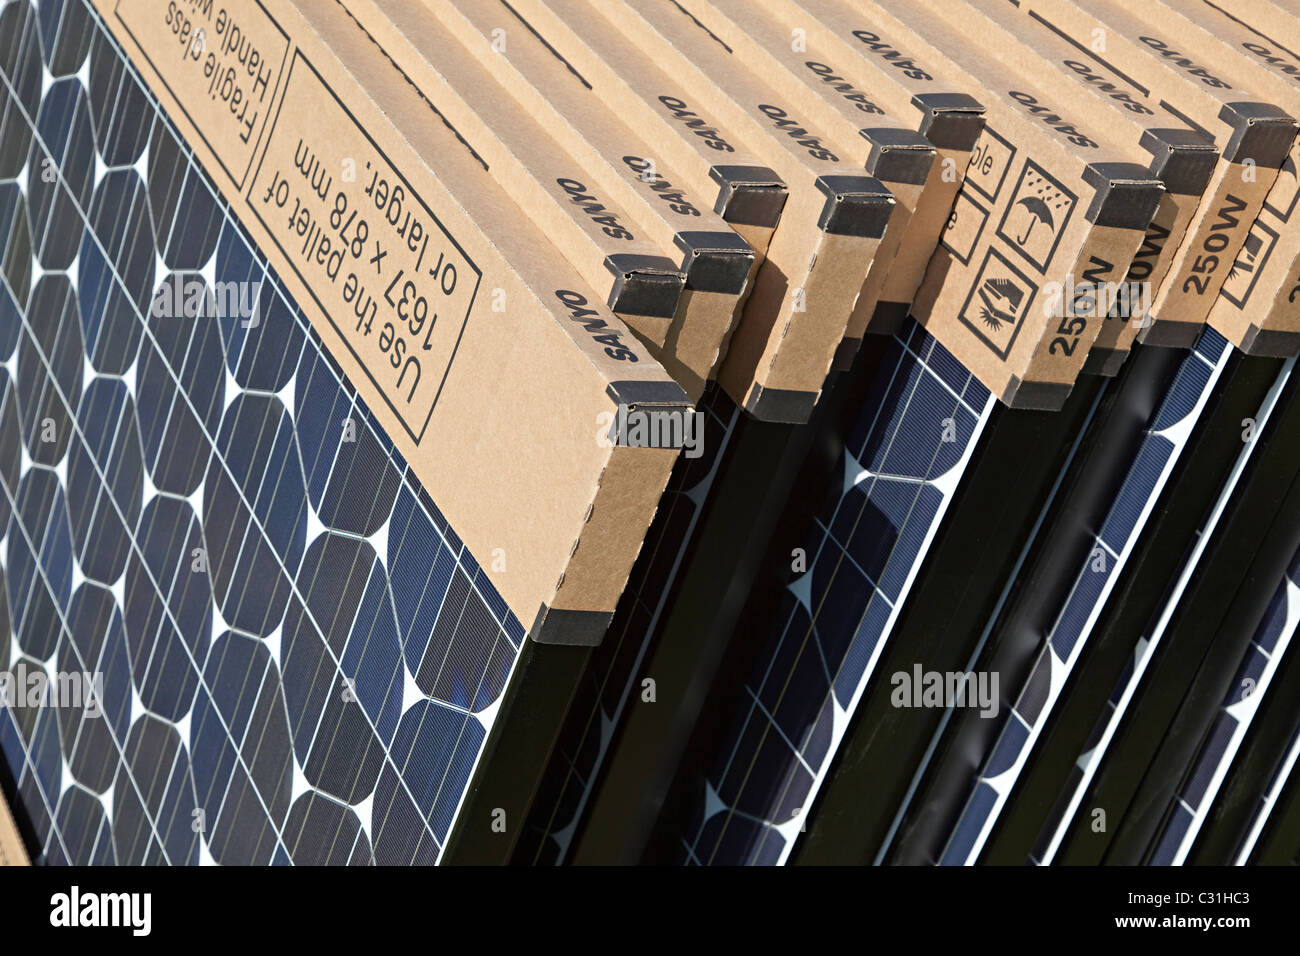 Sanyo high capacity solar pv photovoltaic panels in packaging UK - Stock Image